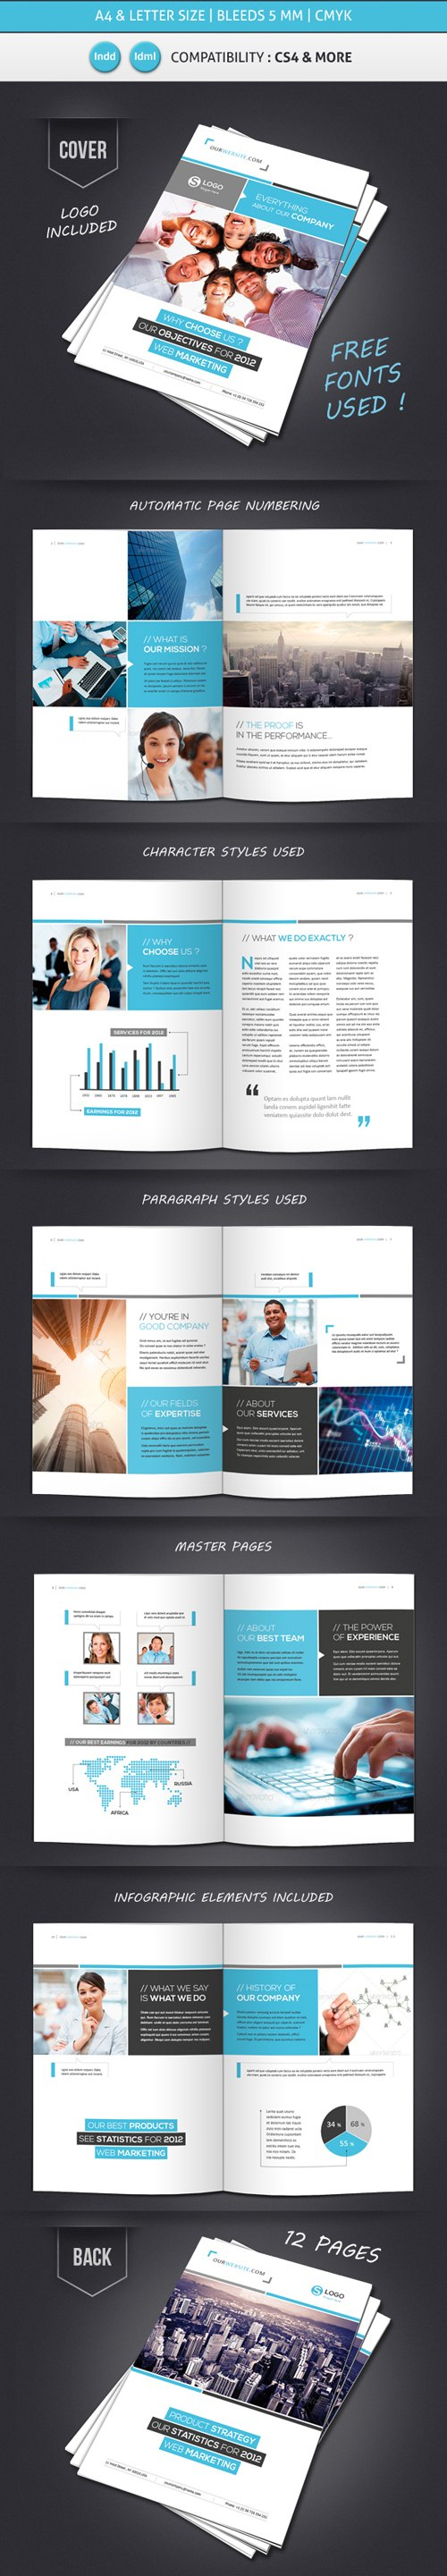 Professional Brochure Designs  Design  Graphic Design Junction regarding 12 Page Brochure Template